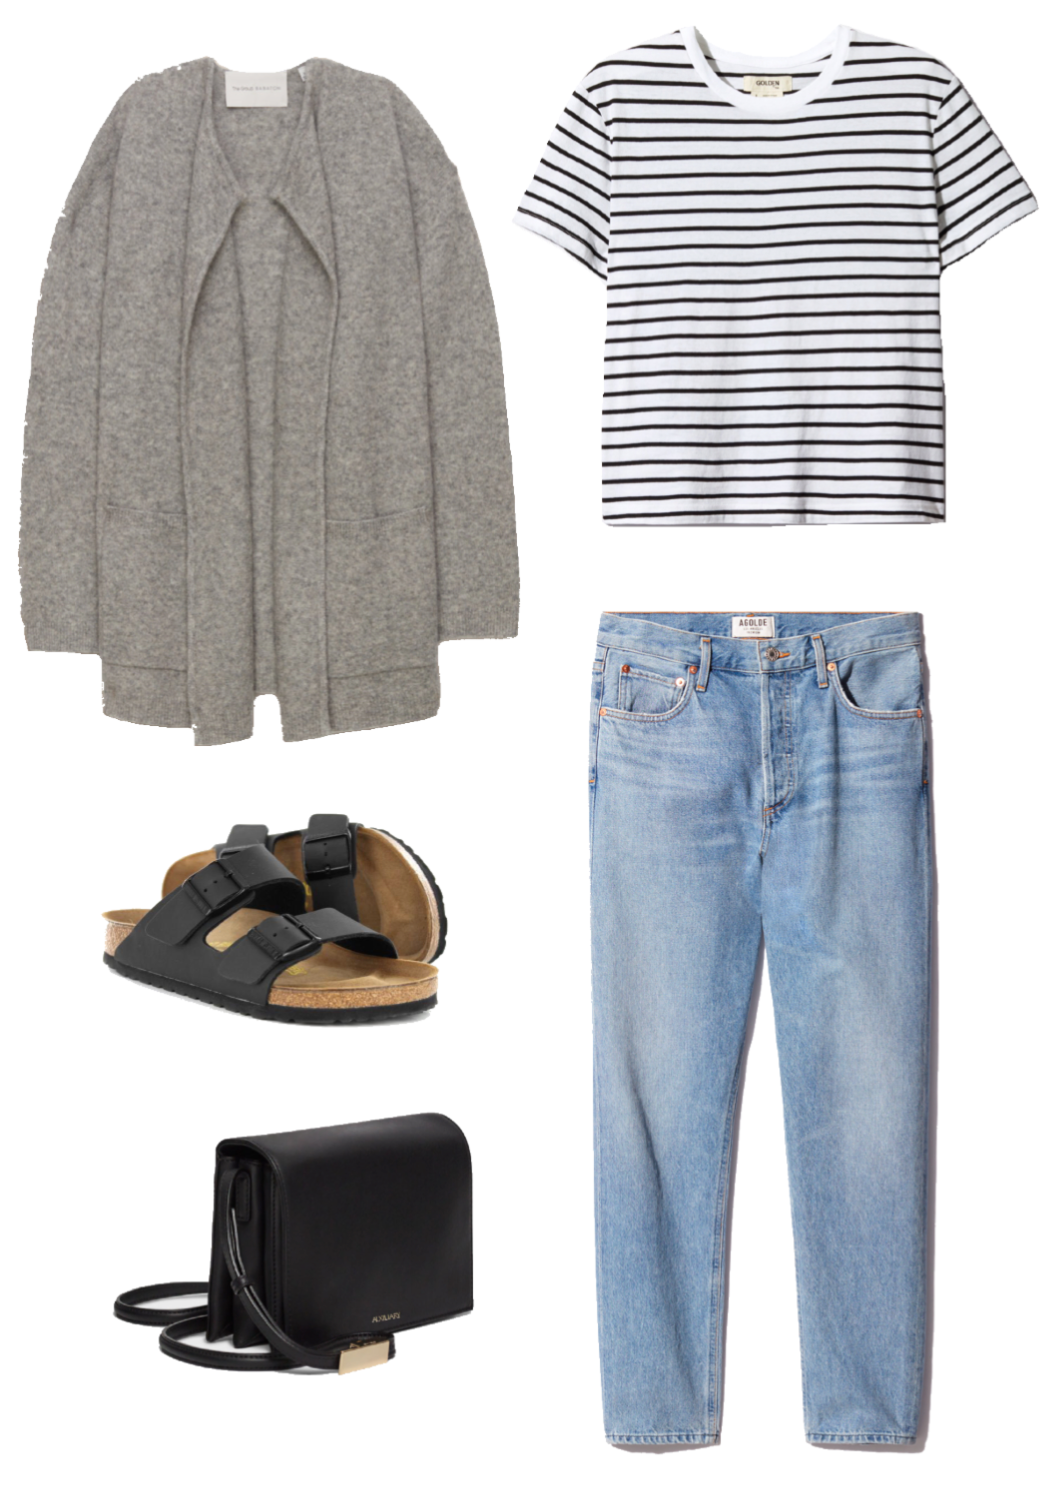 My Basic Year-Round Capsule Wardrobe images